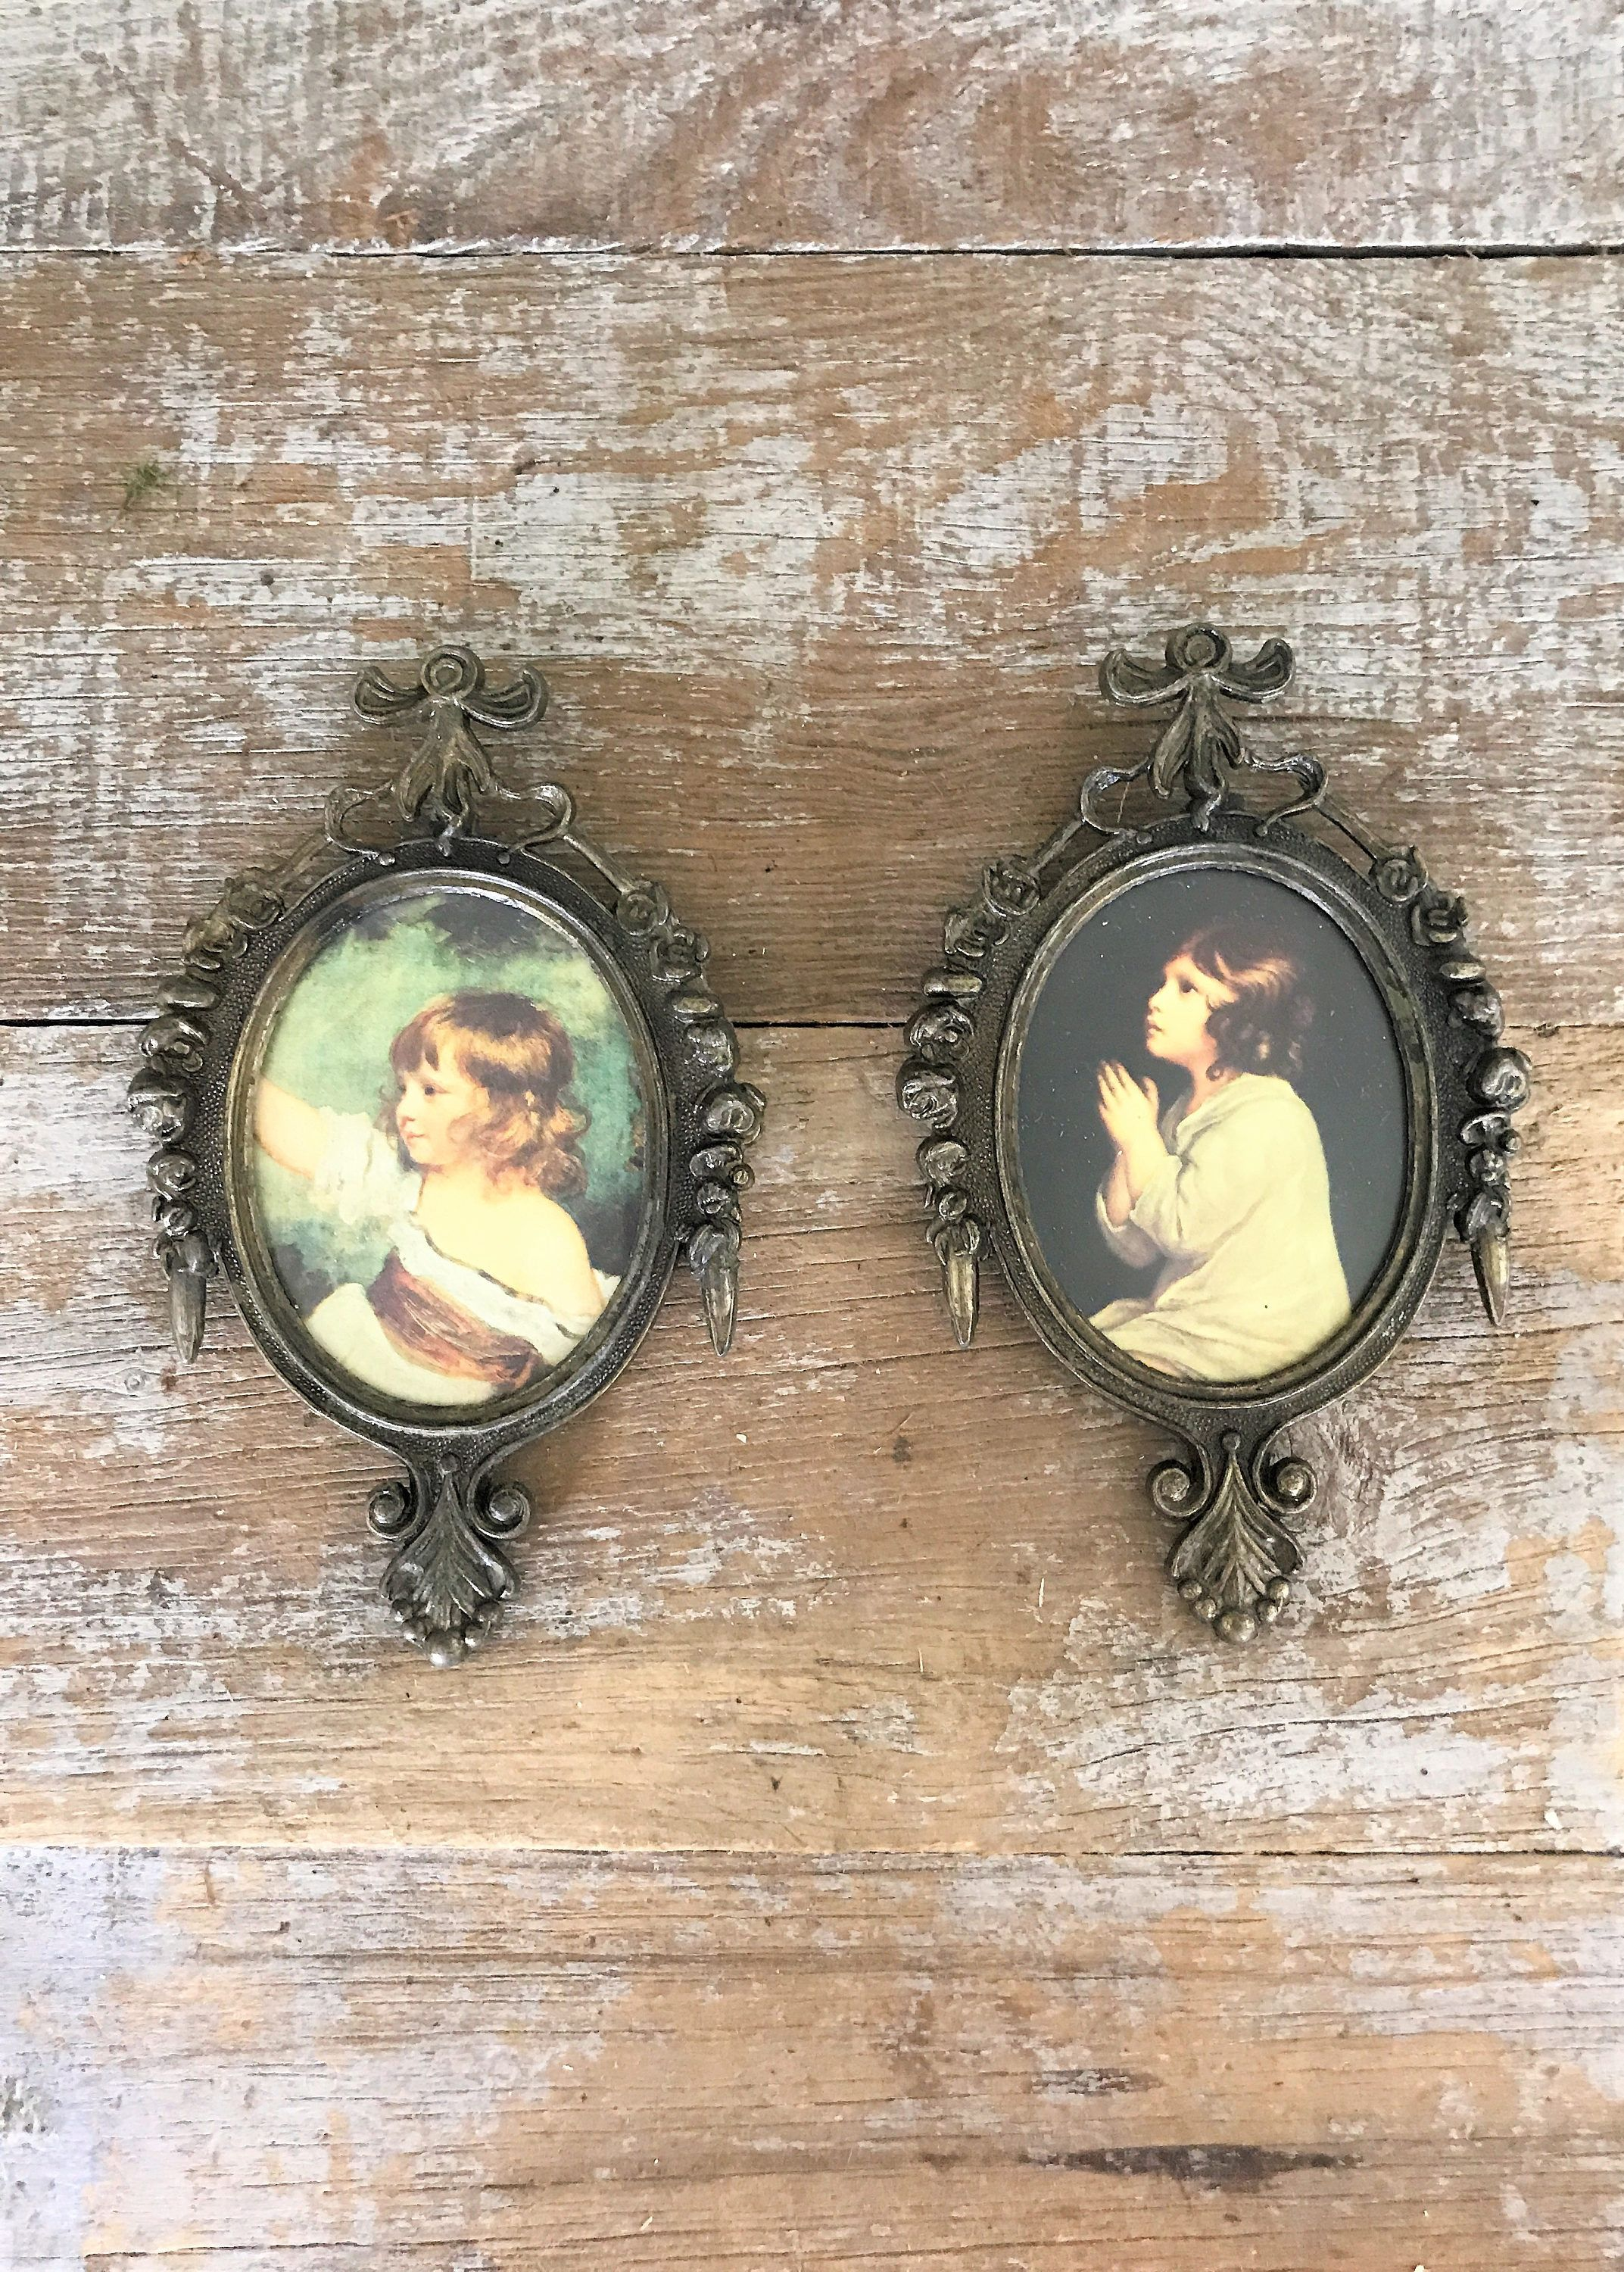 Wall Art 2 Small Antique Wall Hangings Ornate Brass Frame